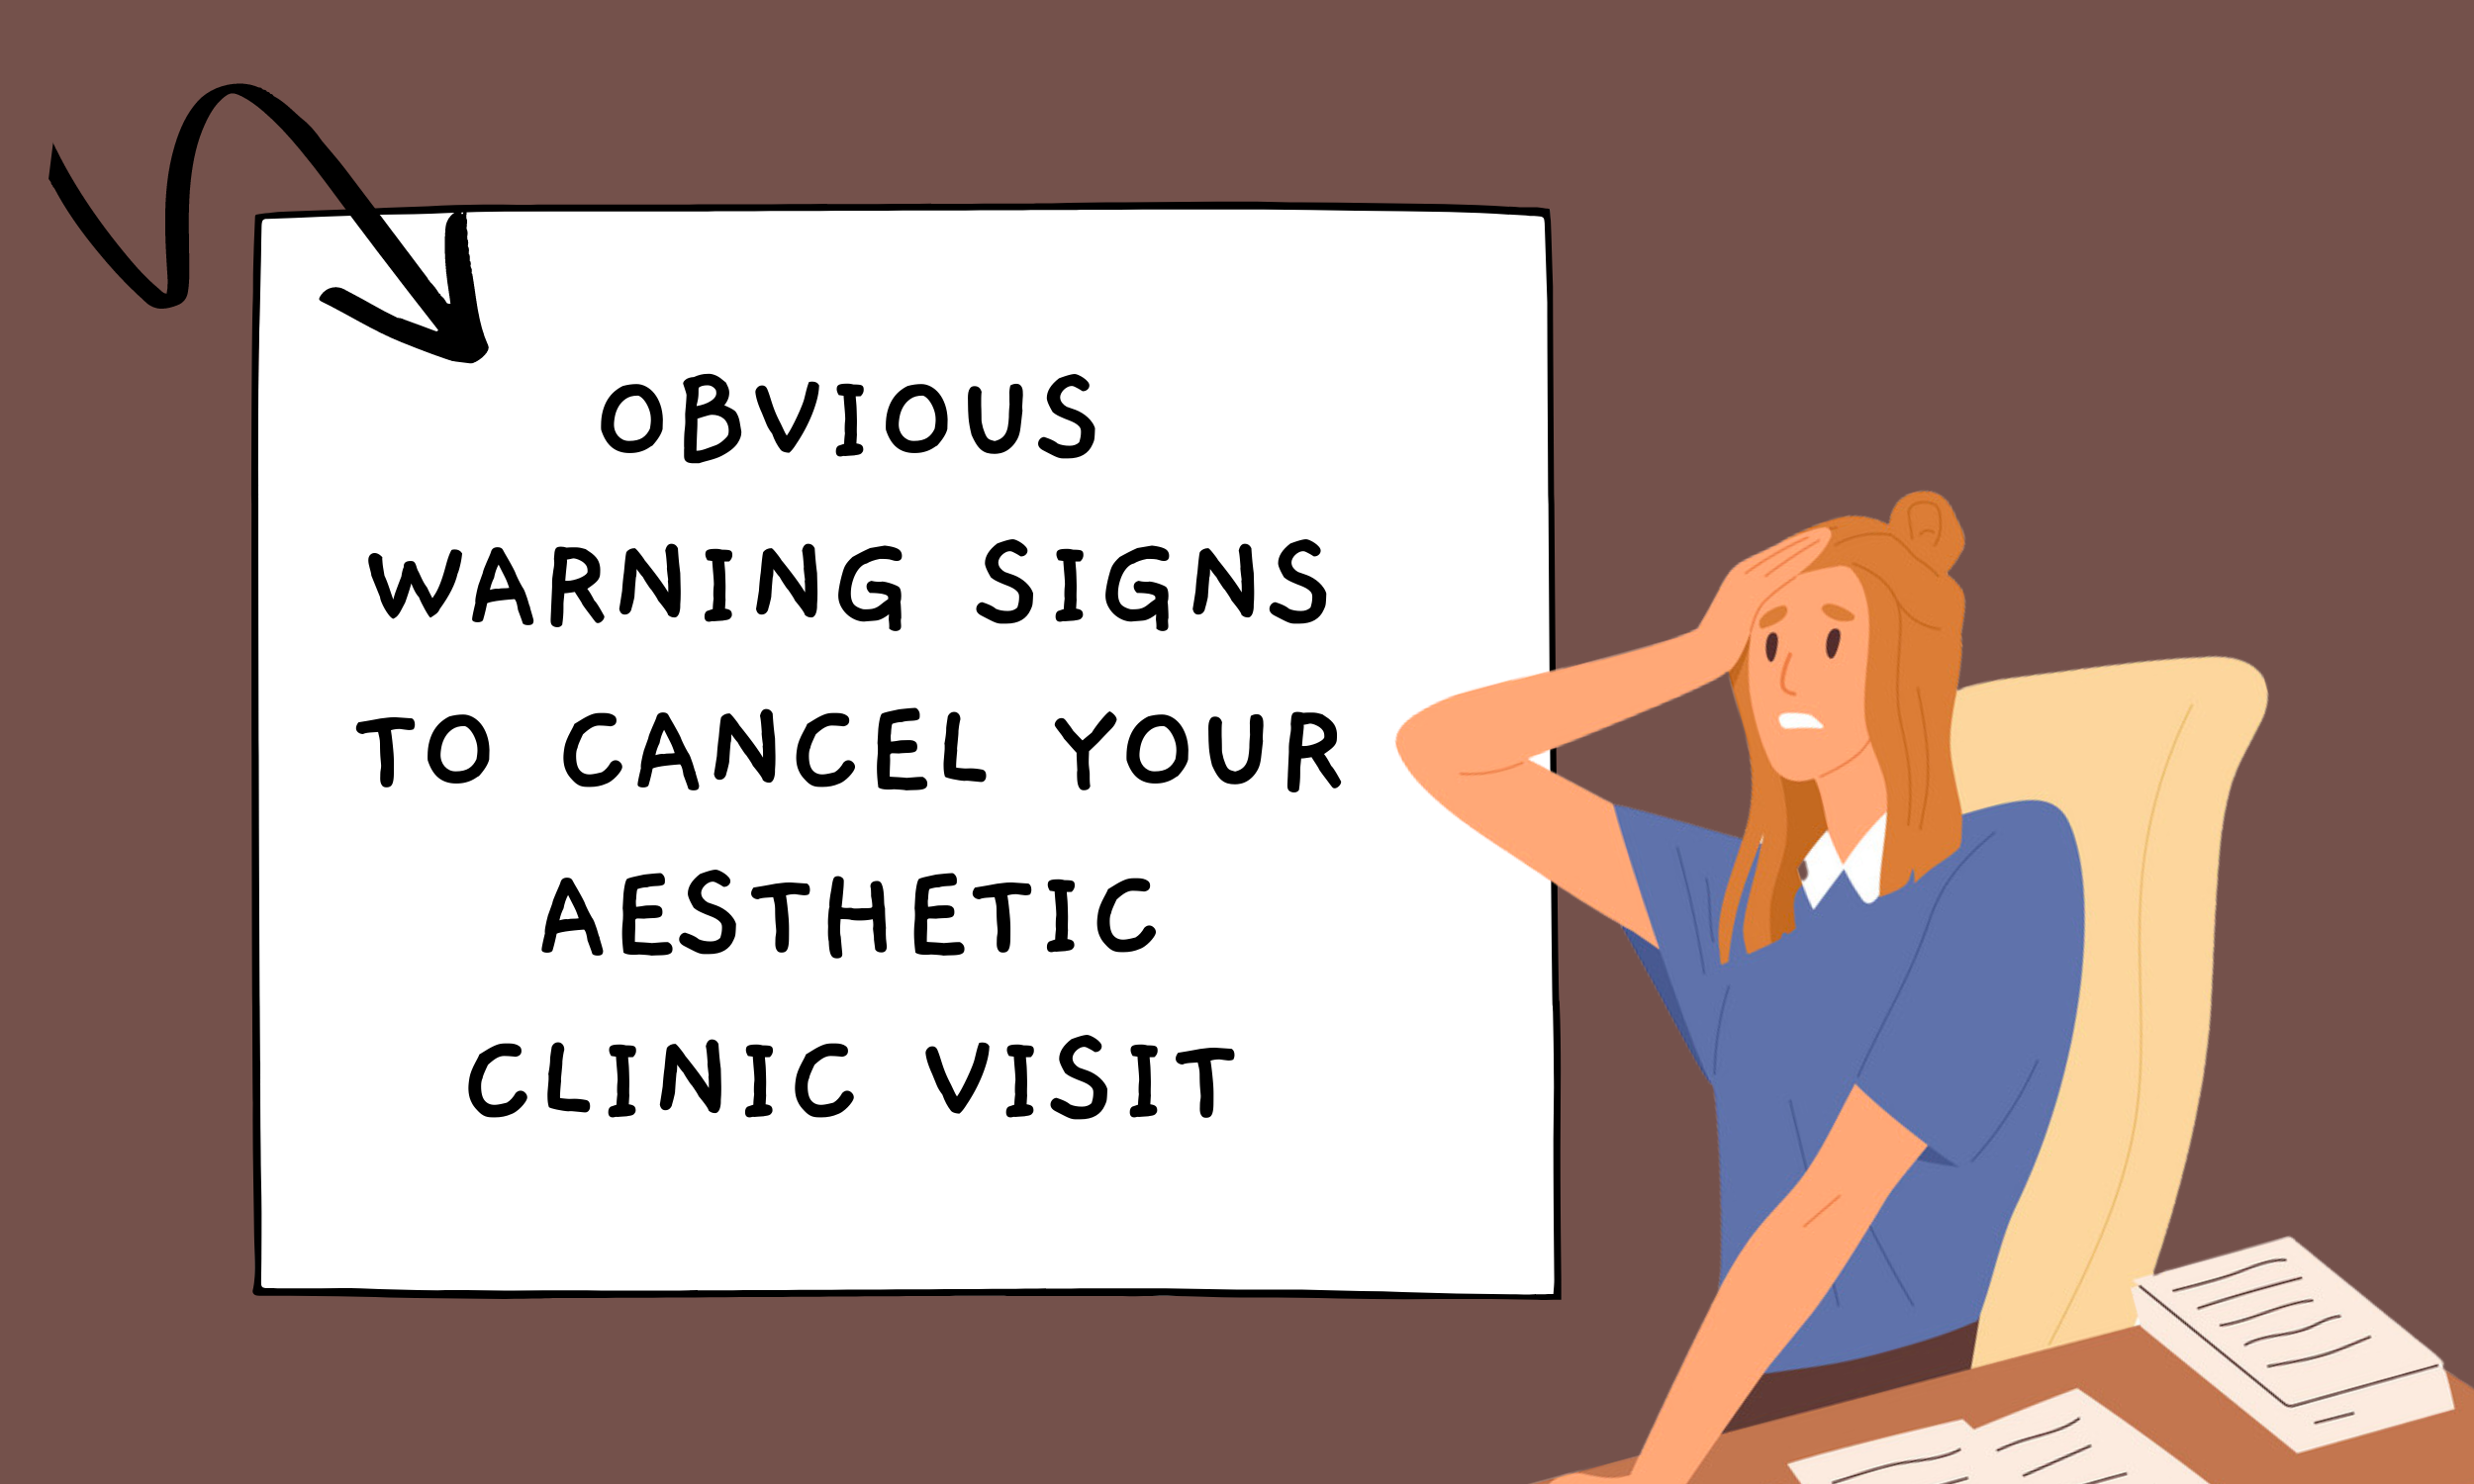 Obvious-Warning-Signs-to-Cancel-Your-Aesthetic-Clinic-Visit